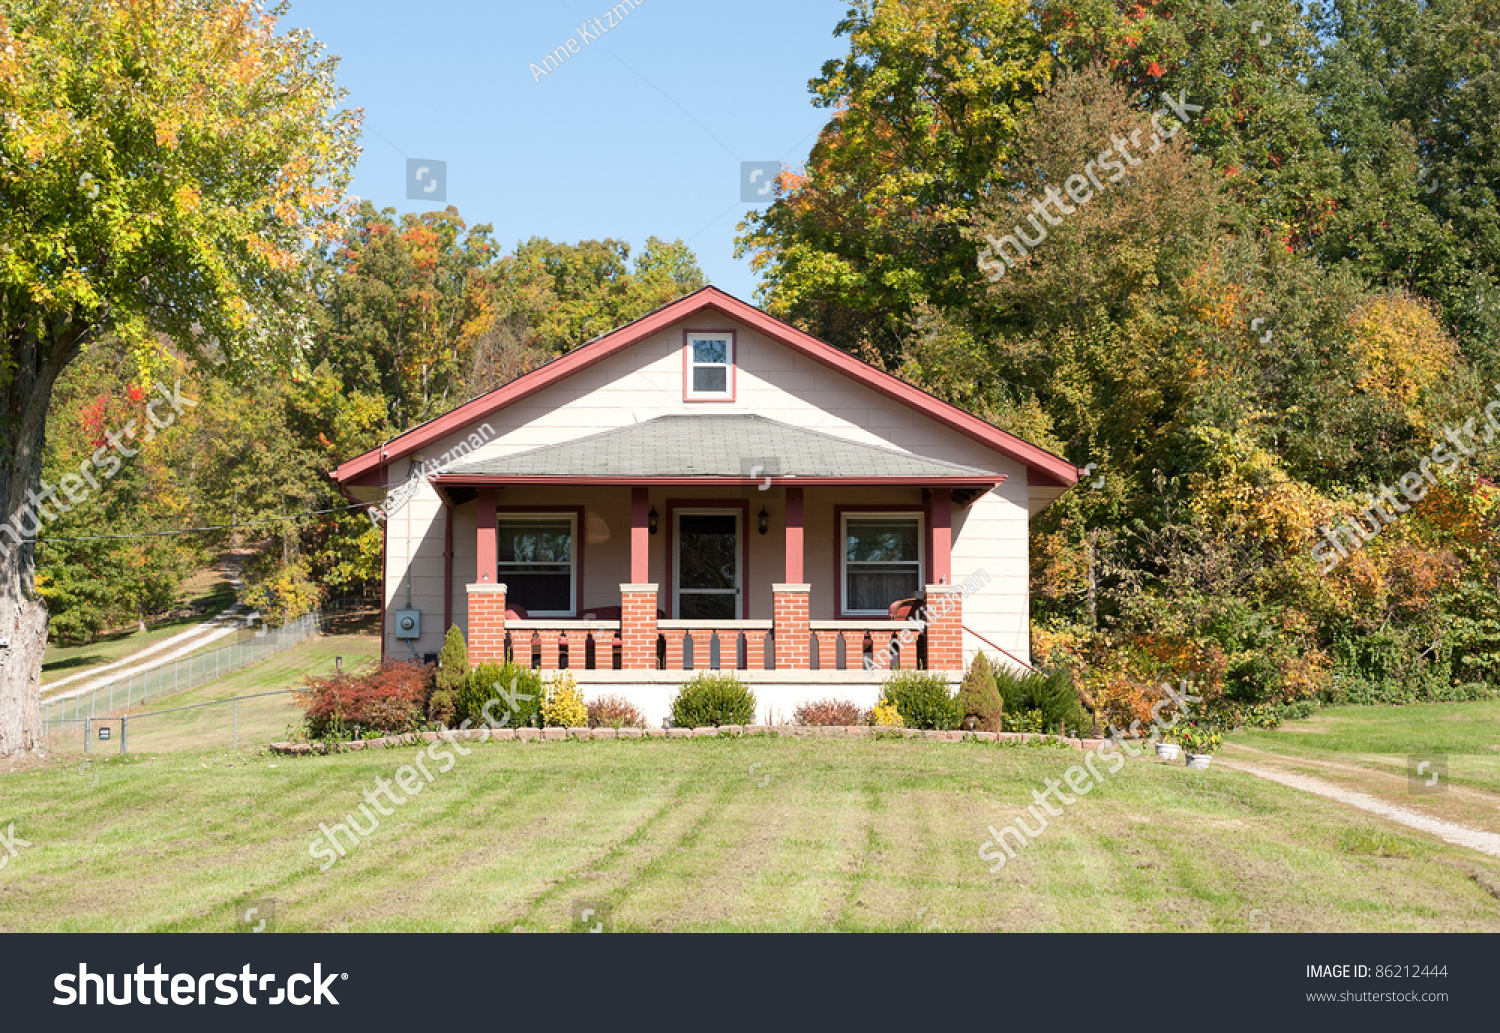 A 1930s Craftsman Style House In The Country In Autumn. Stock Photo 86212444 : Shutterstock